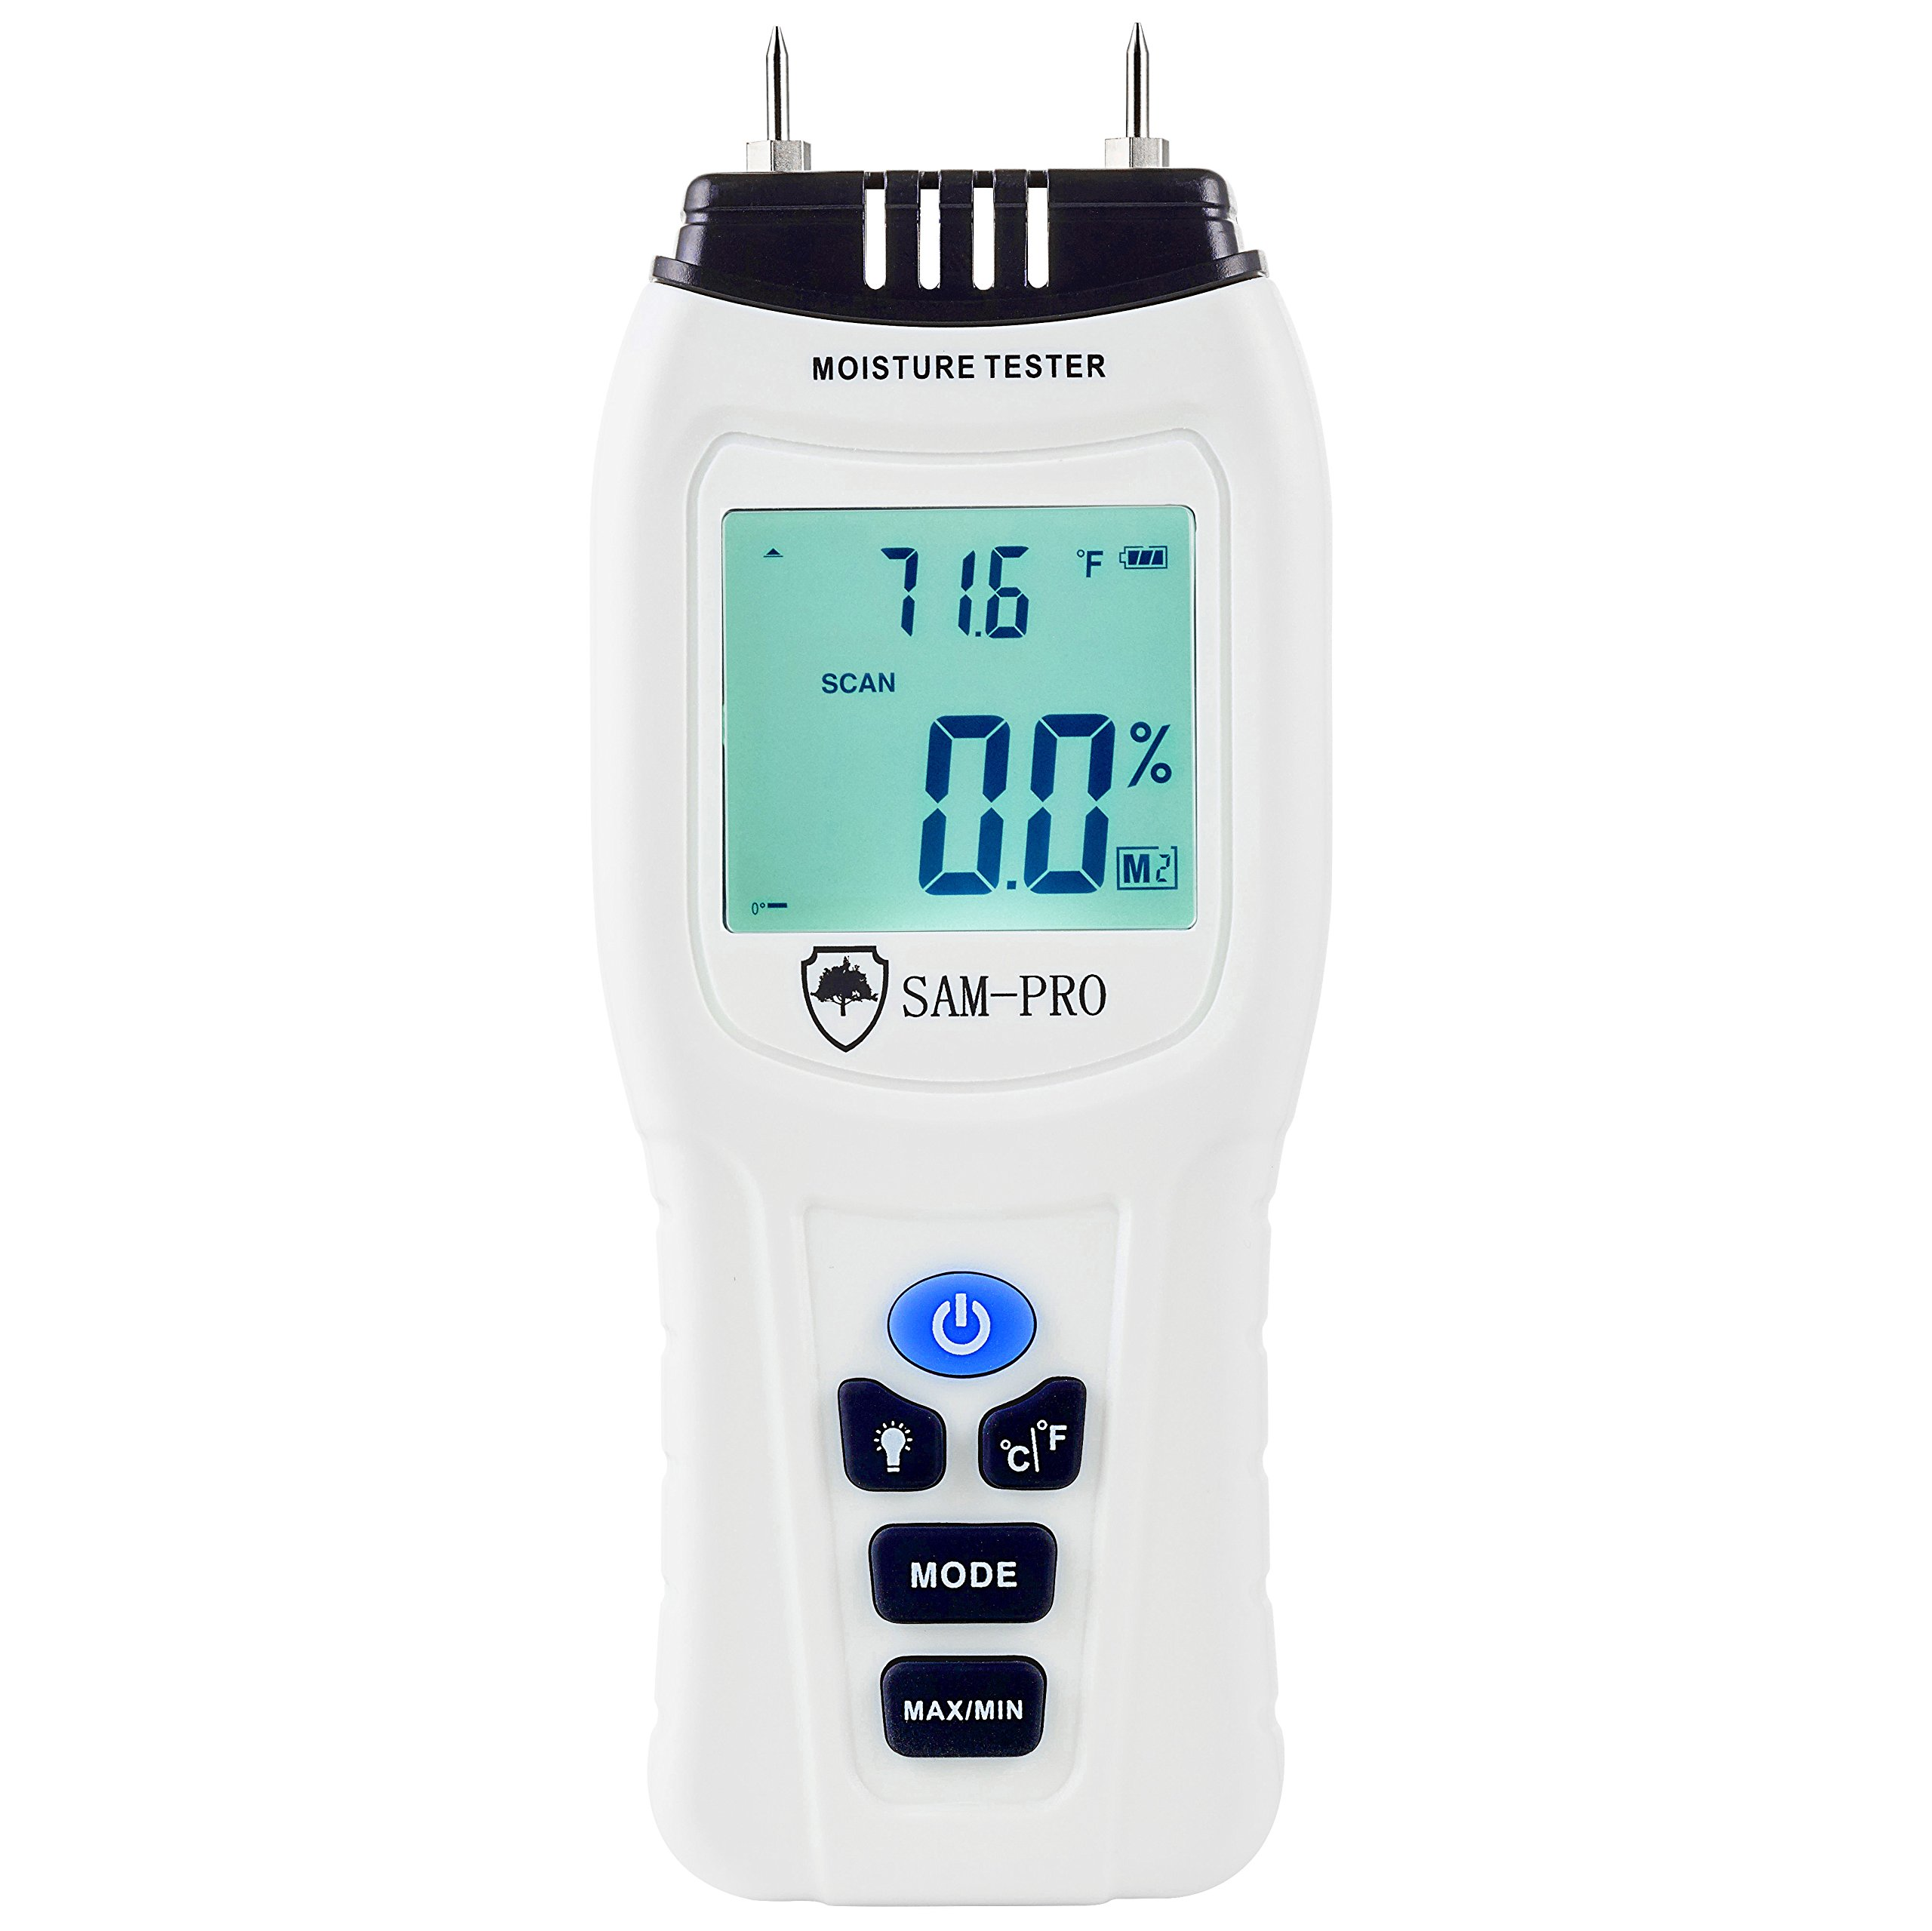 Dual Moisture Meter: LCD BACKLIT DISPLAY- Test Moisture & Temperature in Wood, Concrete, Drywall, Carpet, Floors, Walls, Ceilings. Detector Tool for Mold Risk | Firewood | Home Inspection